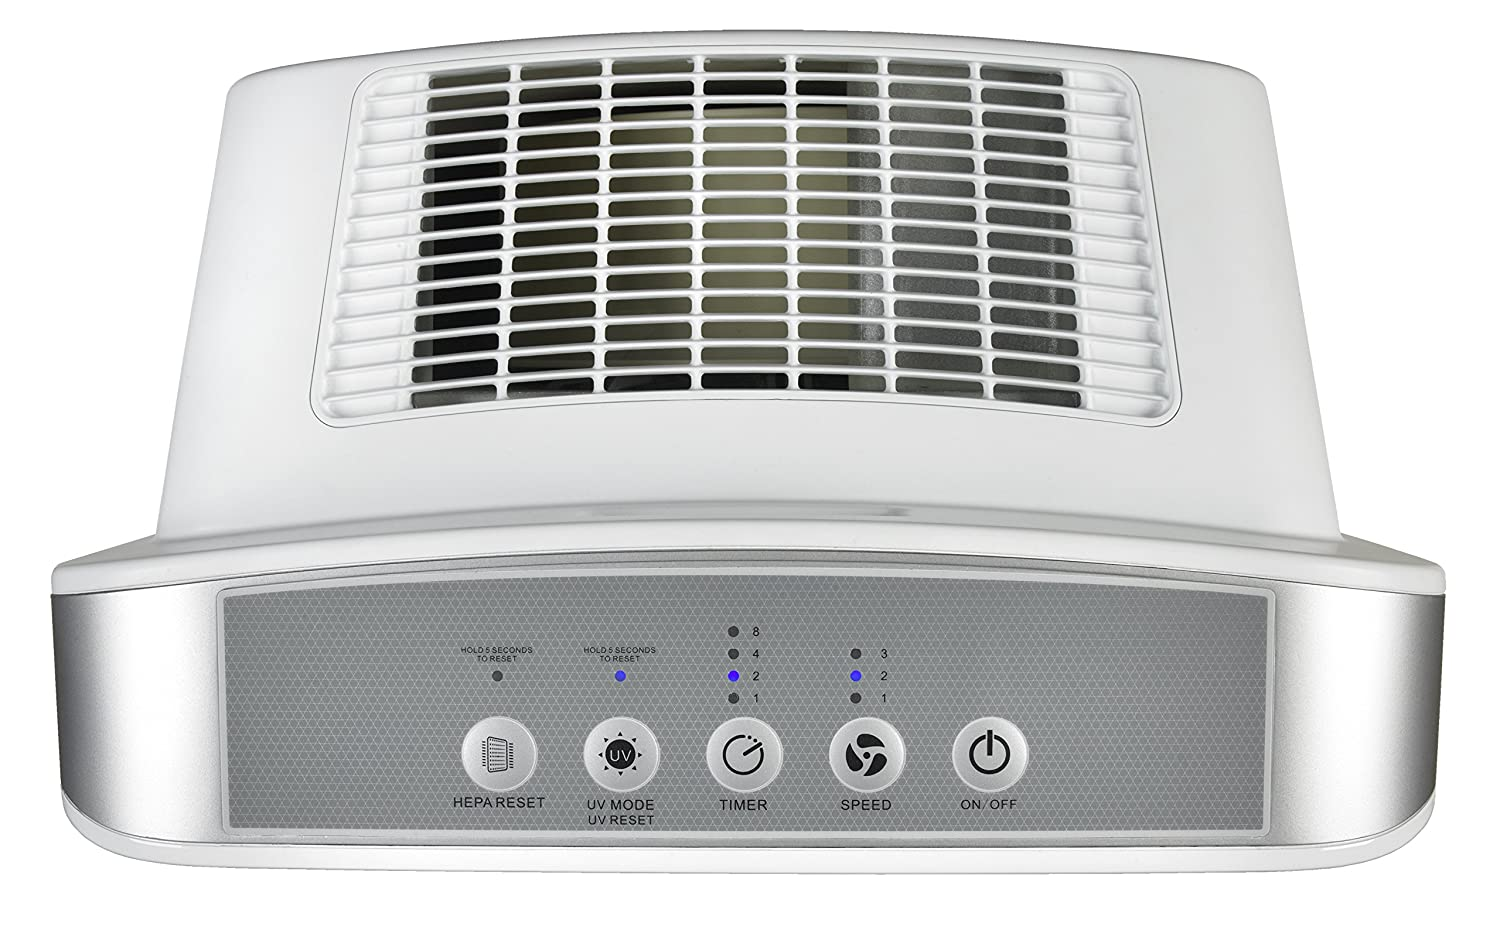 germguardian ac5900w review